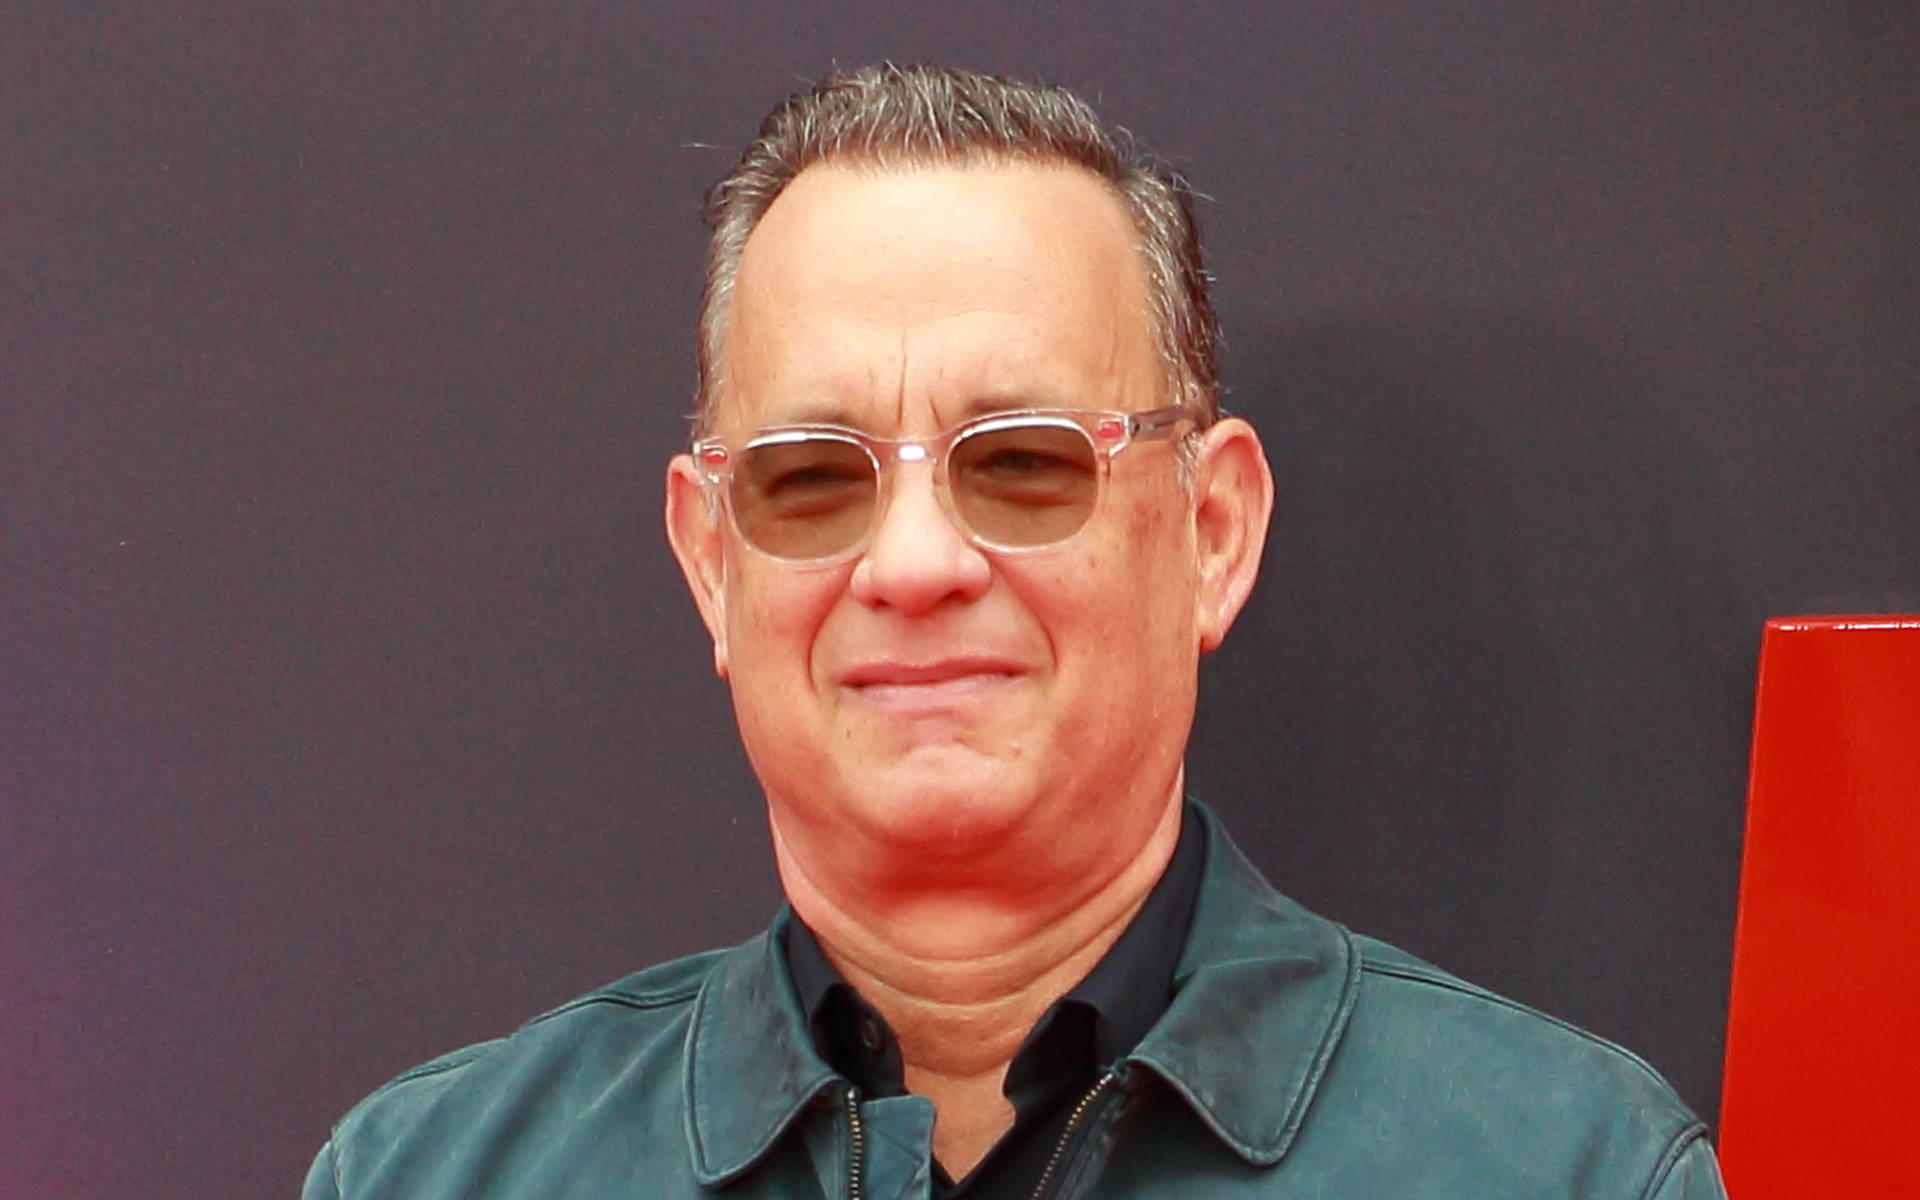 Tom Hanks spielt Actionfigur Major Matt Mason